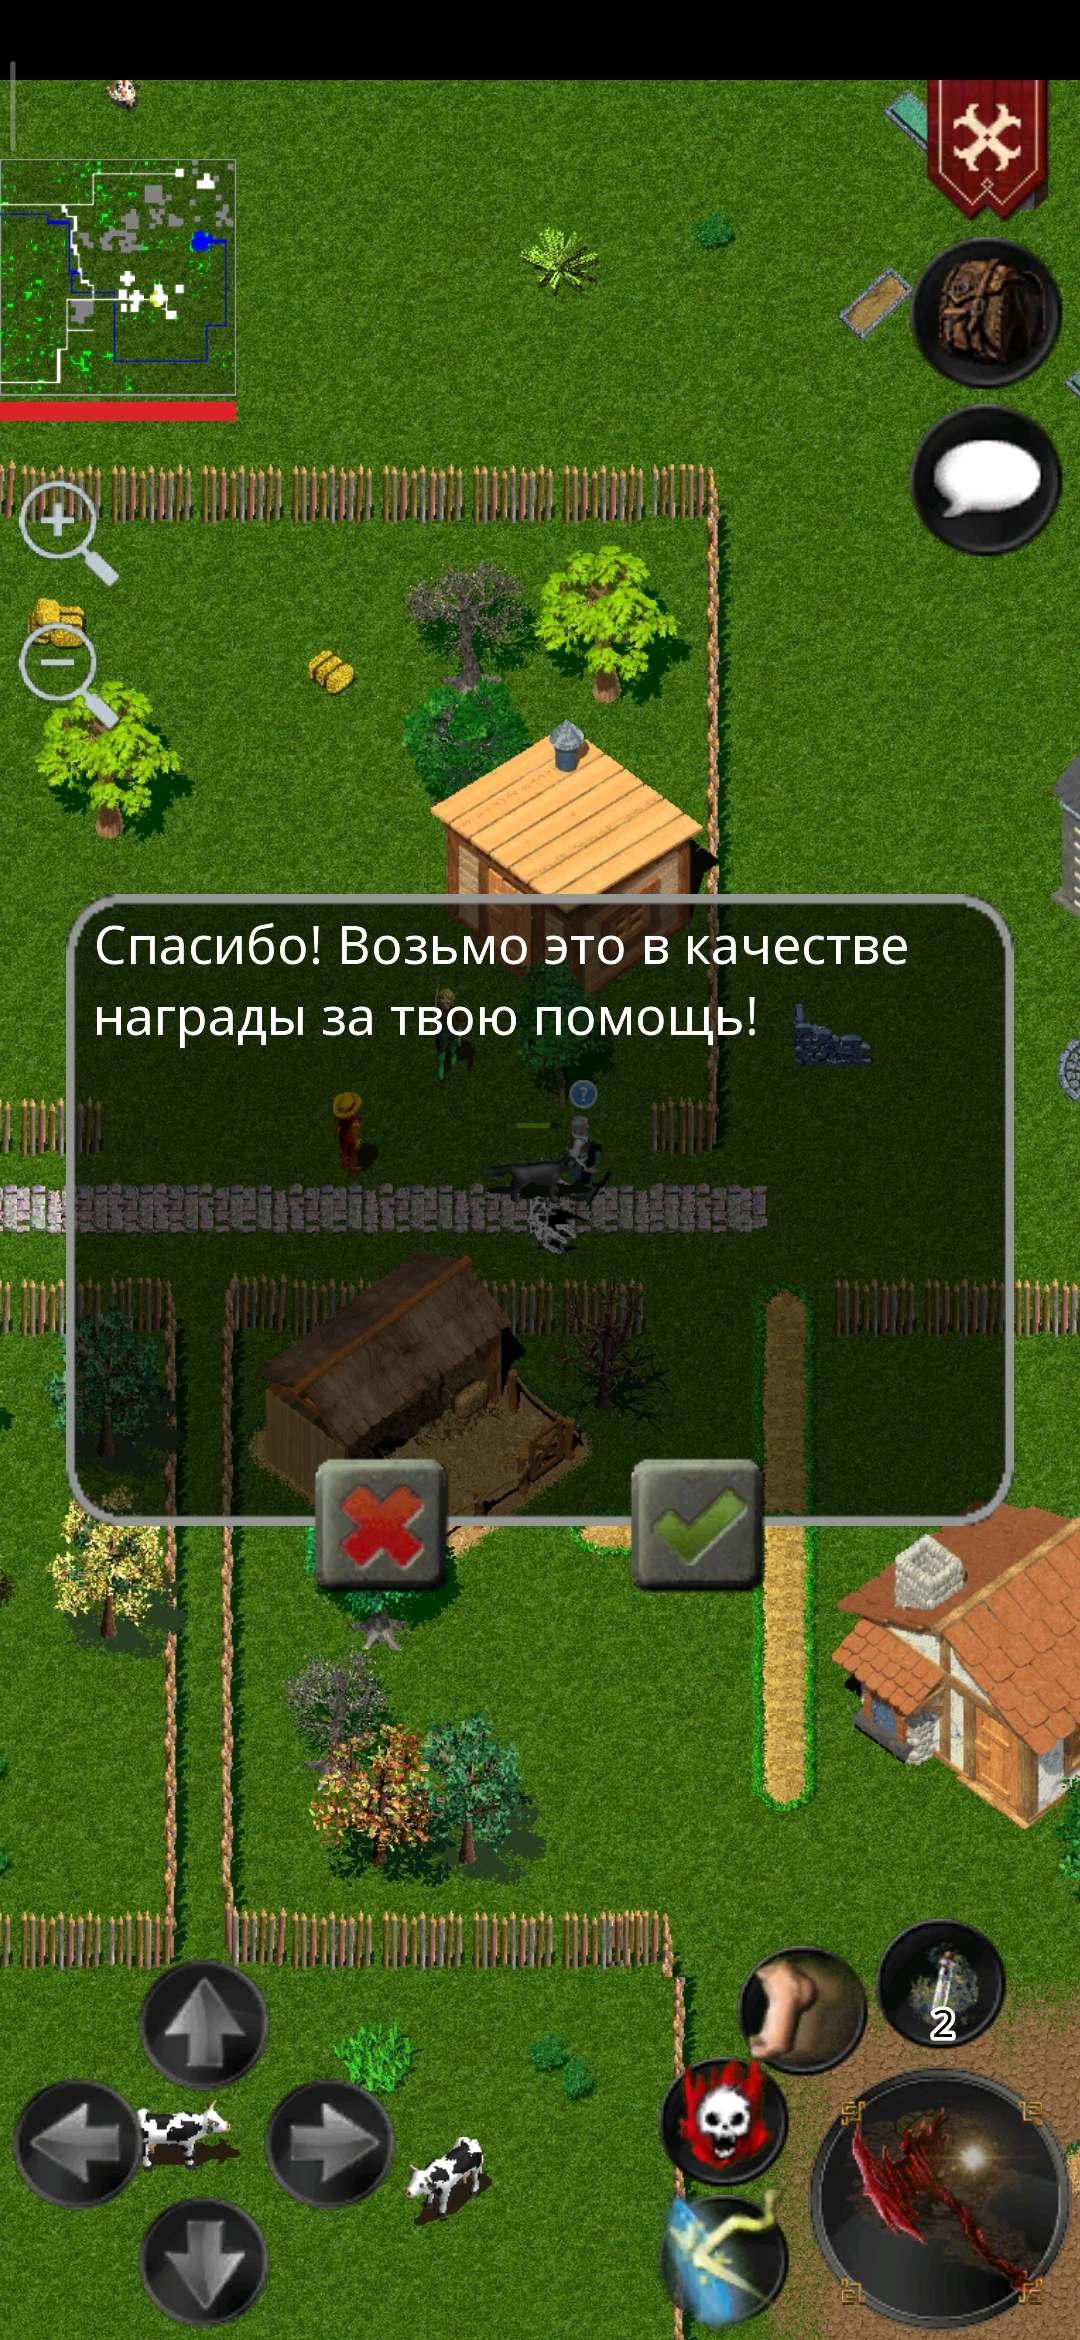 Screenshot_2019-12-09-00-45-13-935_com.dmstudio.ftmmorpg.jpg